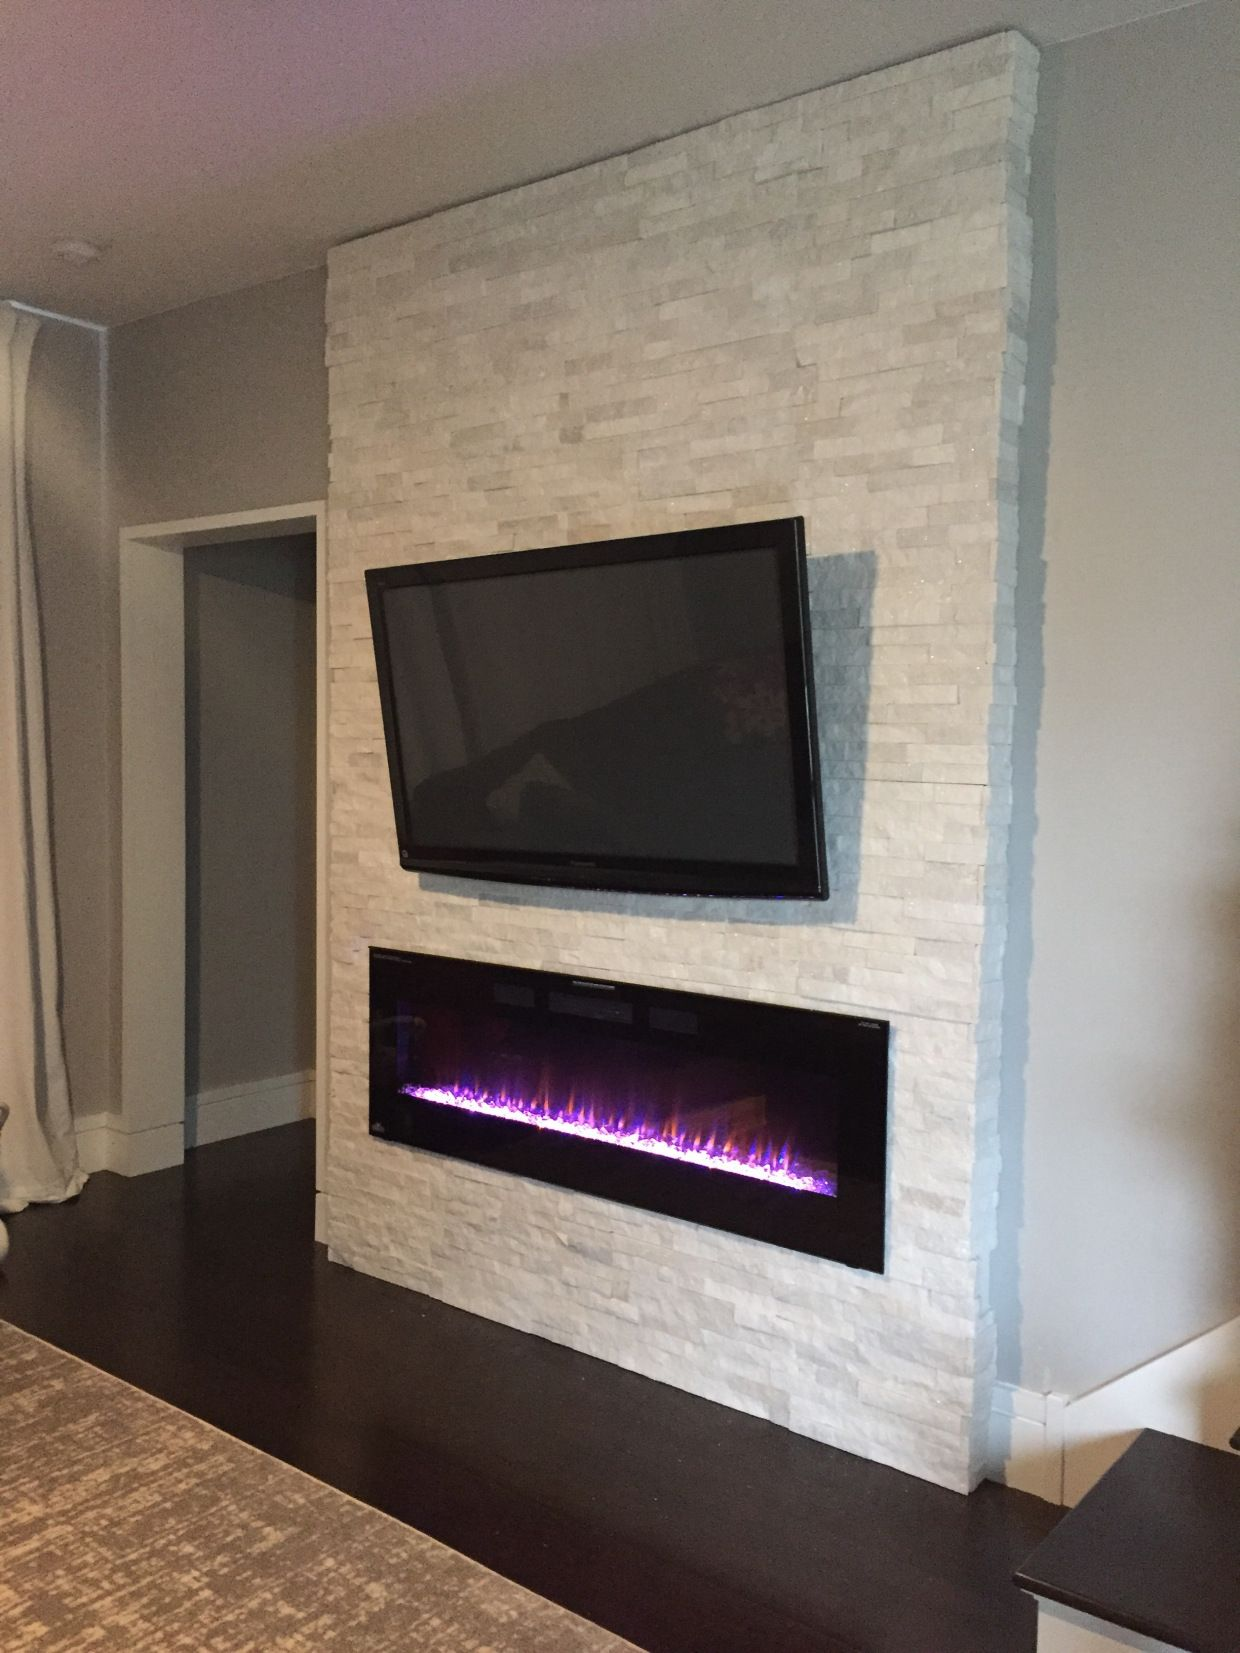 I Am So Excited To Share The Rest Of My Story On Building A Fireplace Surround For Our As Mentioned In An Earlier Post Purchased Electric